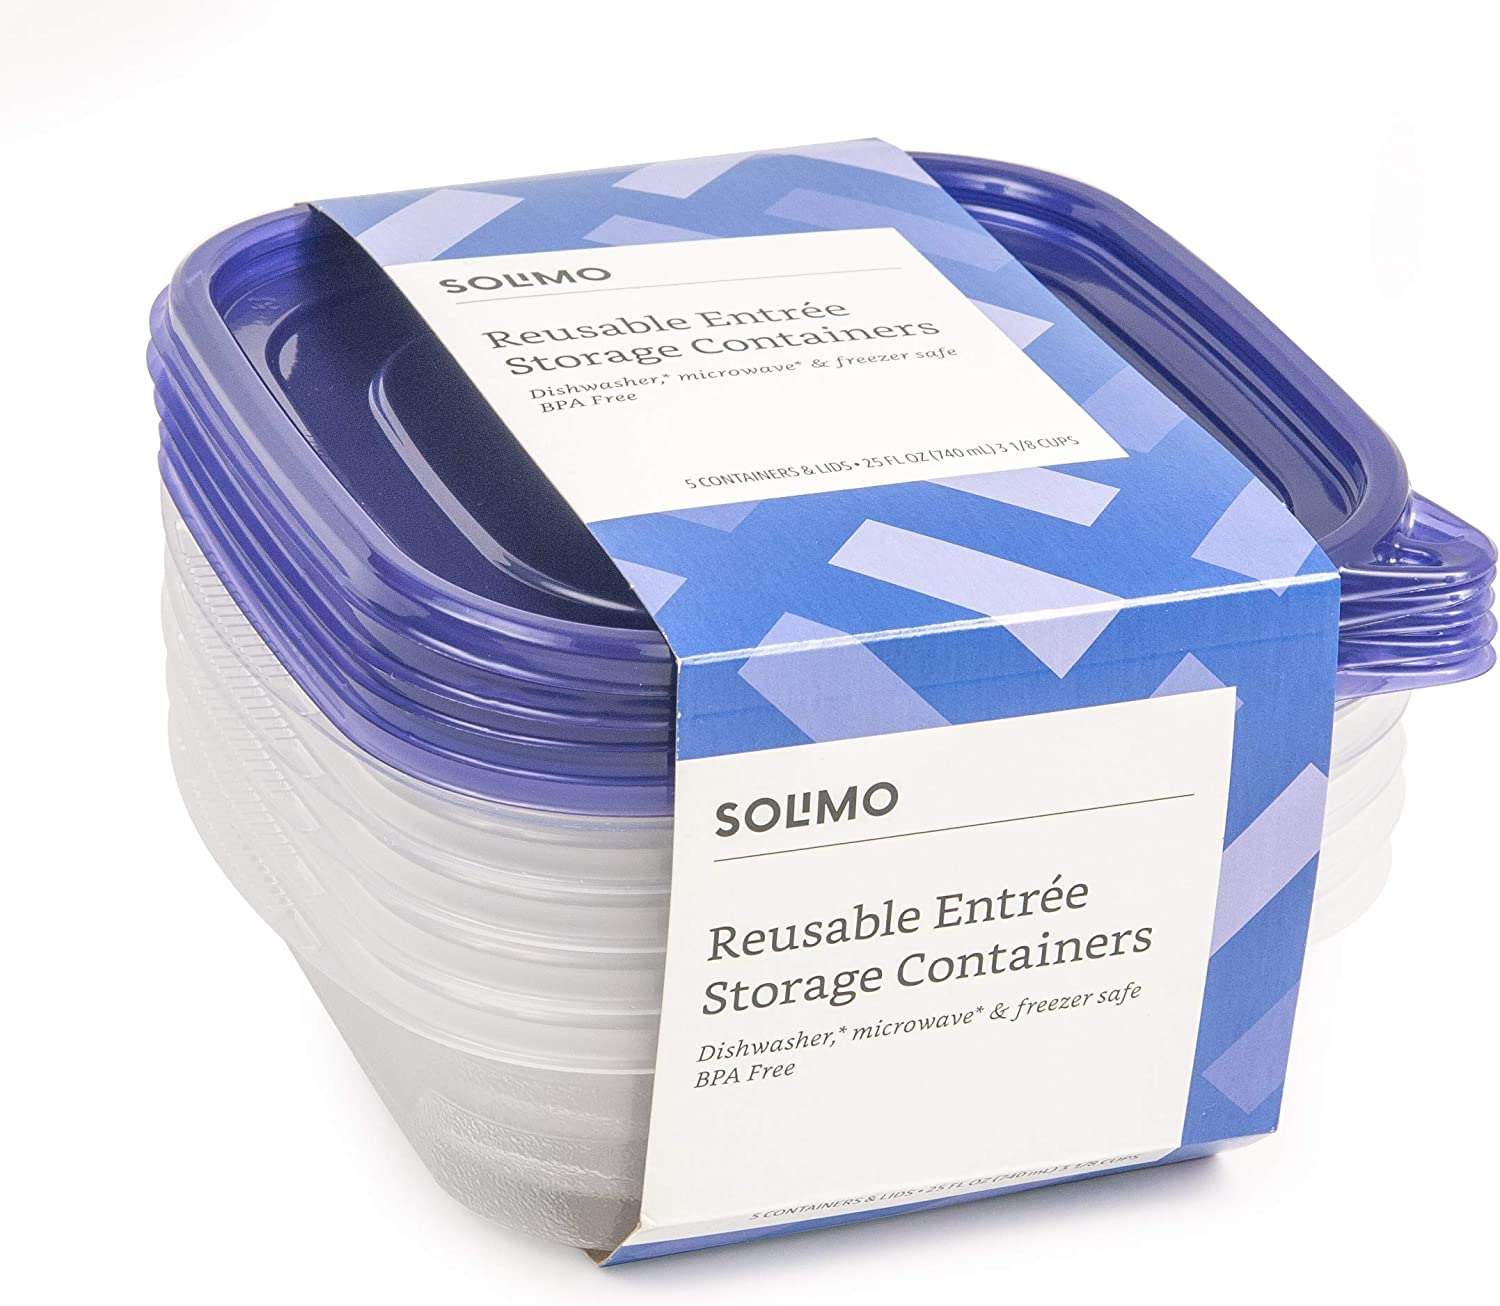 Amazon Brand - Solimo Plastic Food Storage Containers with Lids (30 Pack) - BPA-Free, Safe for Dishwasher, Microwave, Freezer - Entrée 25 oz.